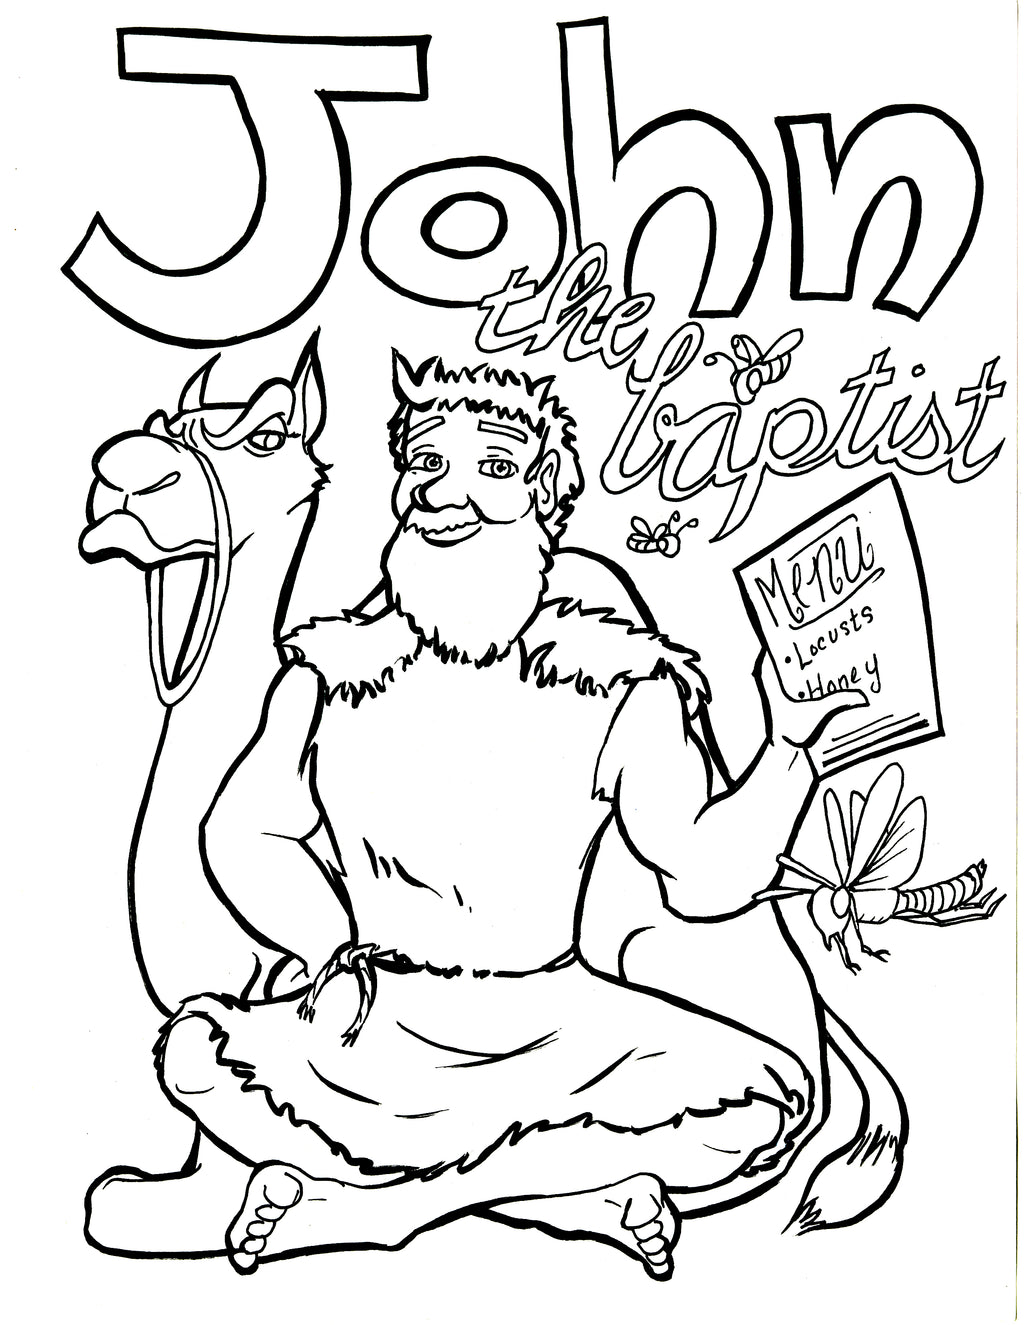 True Worship Coloring Page   Bible coloring pages, Childrens bible ...   1325x1024